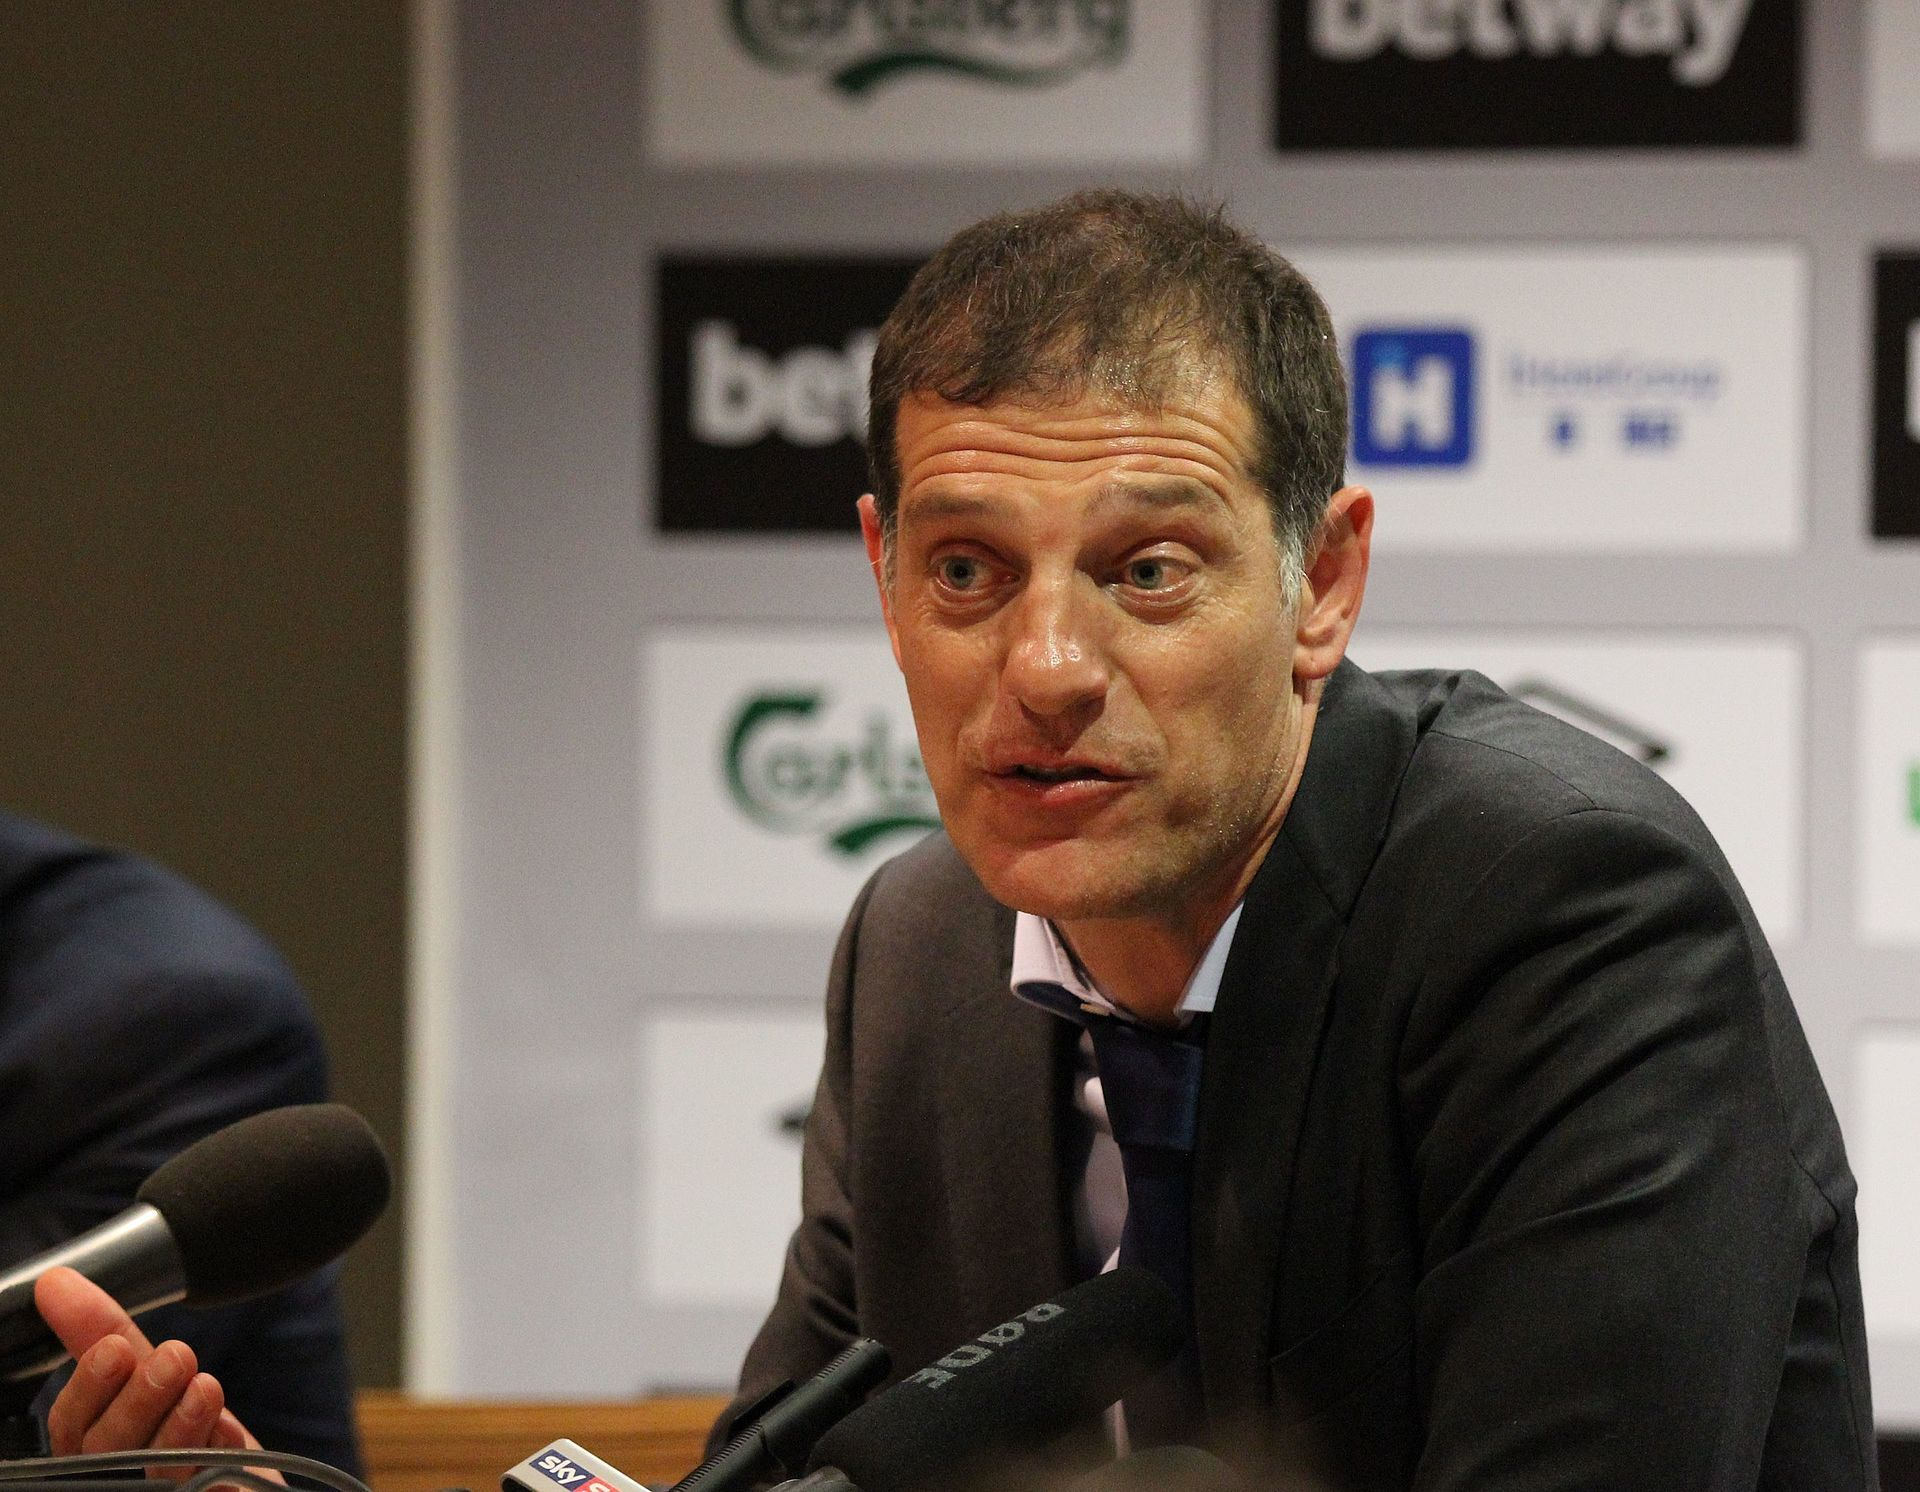 Slaven Bilic becomes the first Premier League manager to be fired West Brom